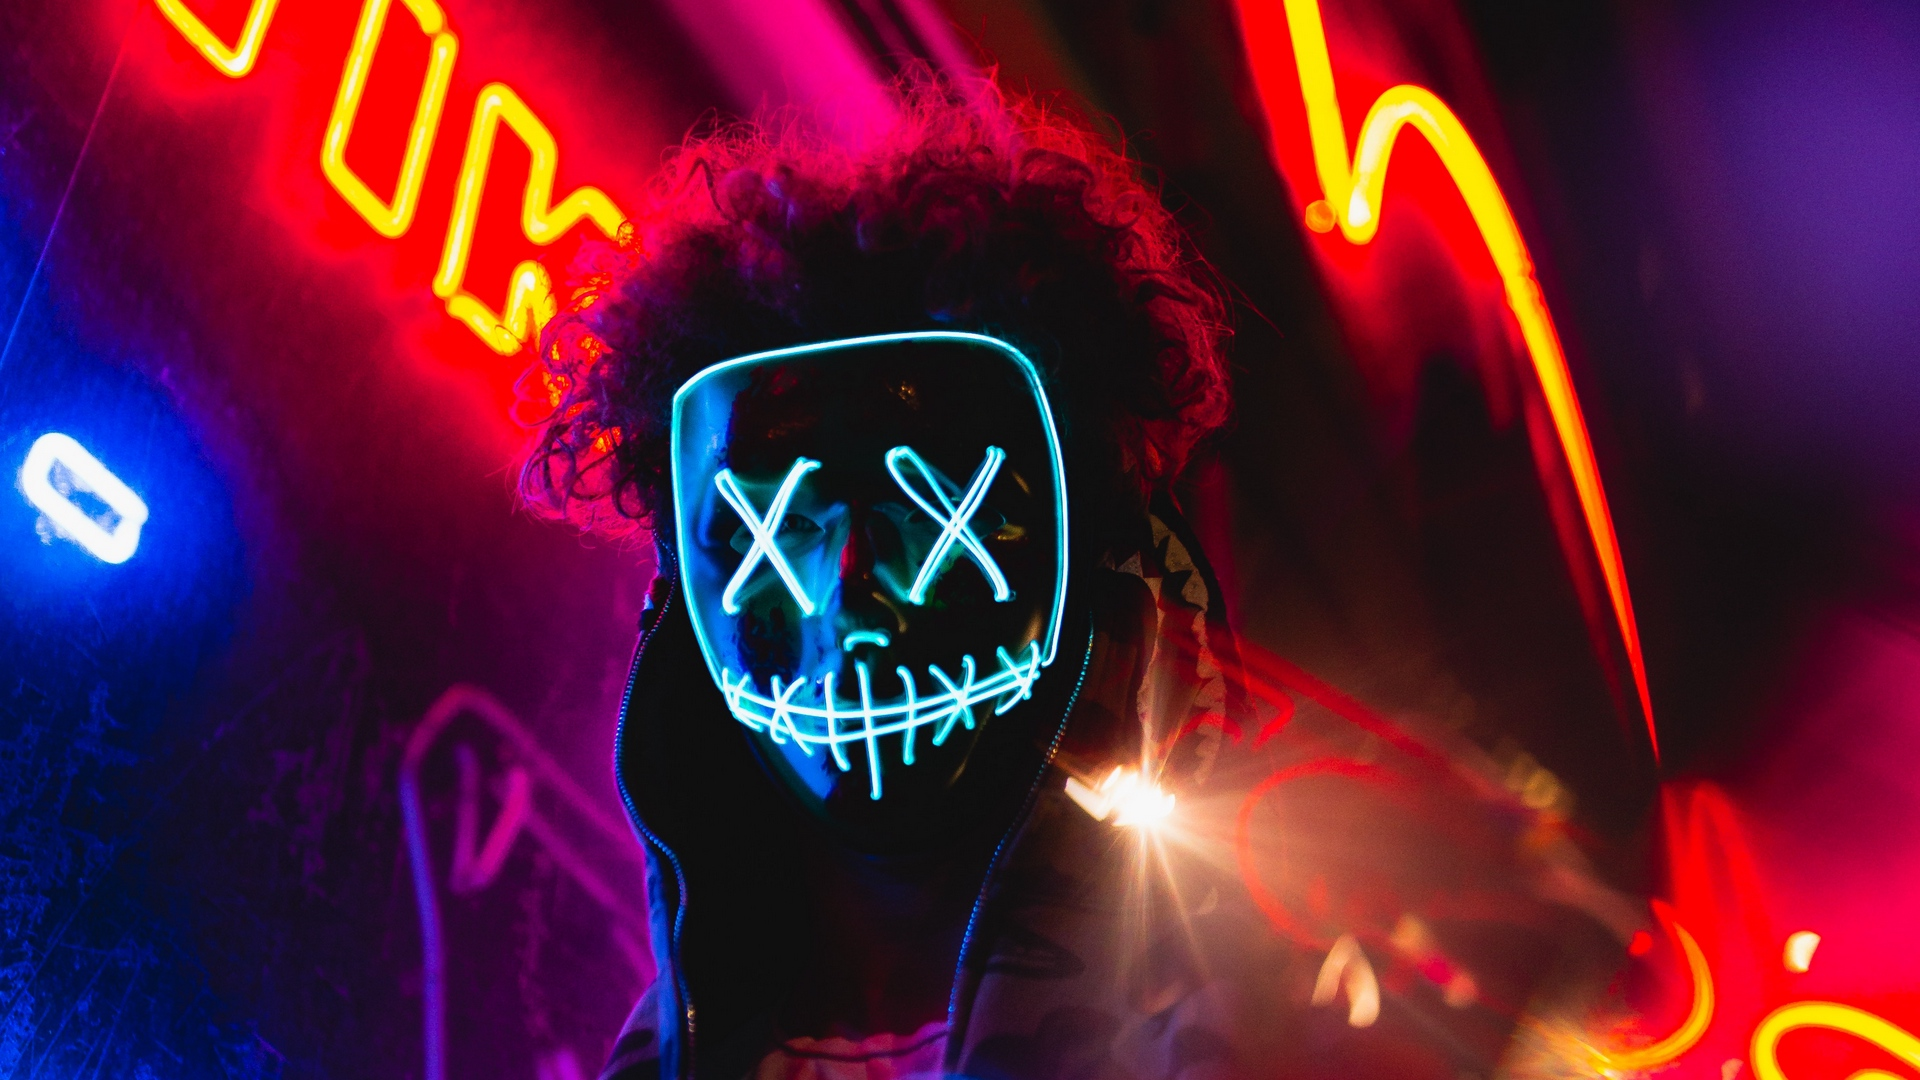 Neon Wallpaper 1920x1080 Posted By Zoey Cunningham